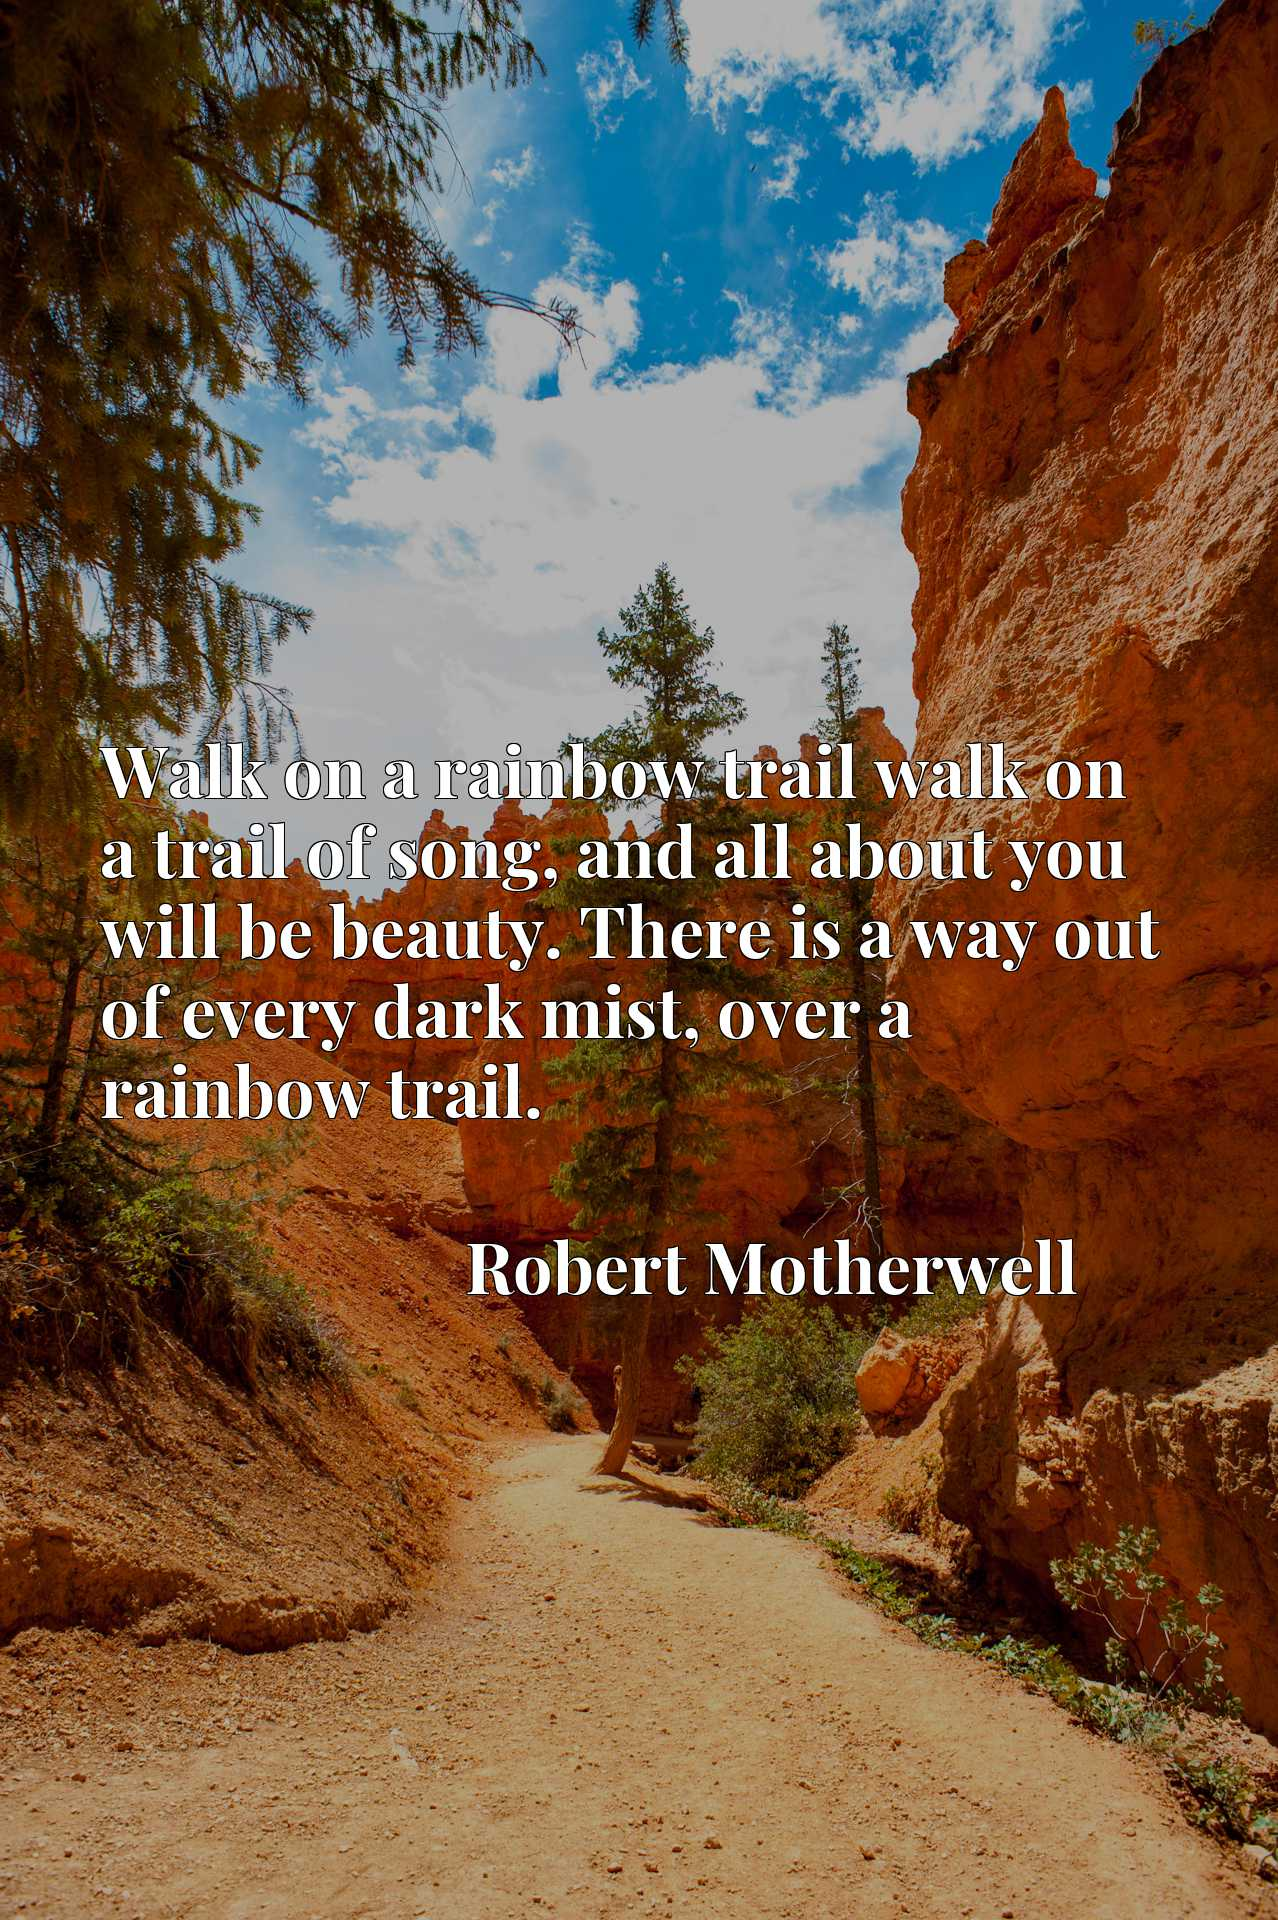 Walk on a rainbow trail walk on a trail of song, and all about you will be beauty. There is a way out of every dark mist, over a rainbow trail.